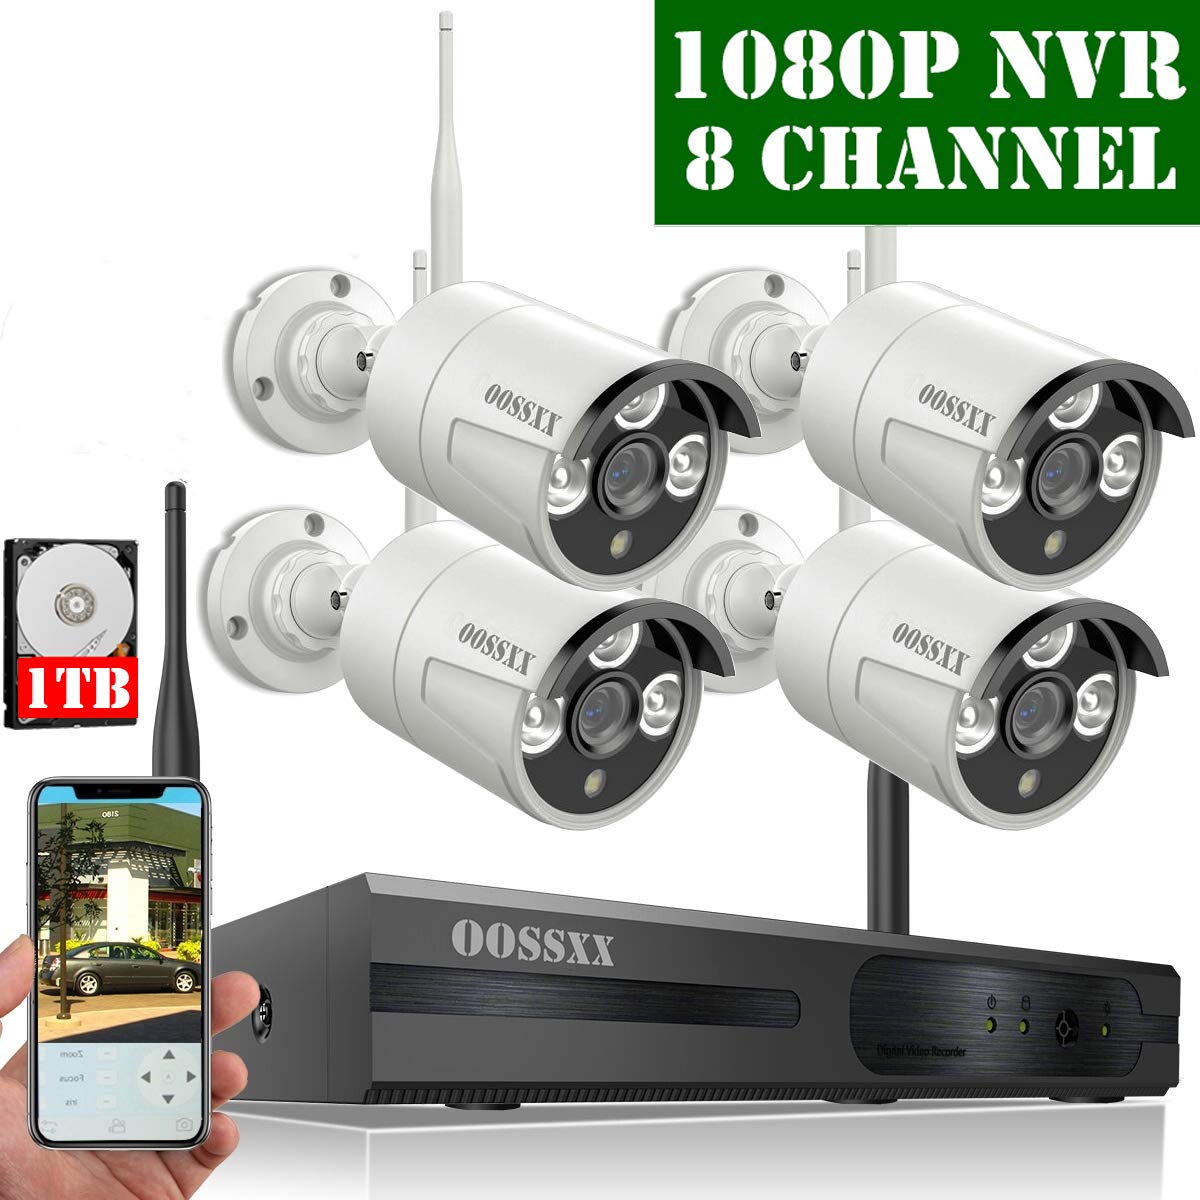 【2019 Update】 HD 1080P 8-Channel OOSSXX Wireless Security Camera System,4Pcs 720P(1.0 Megapixel) Wireless Indoor/Outdoor IR Bullet IP Cameras,P2P,App, HDMI Cord & 1TB HDD Pre-Install by OOSSXX